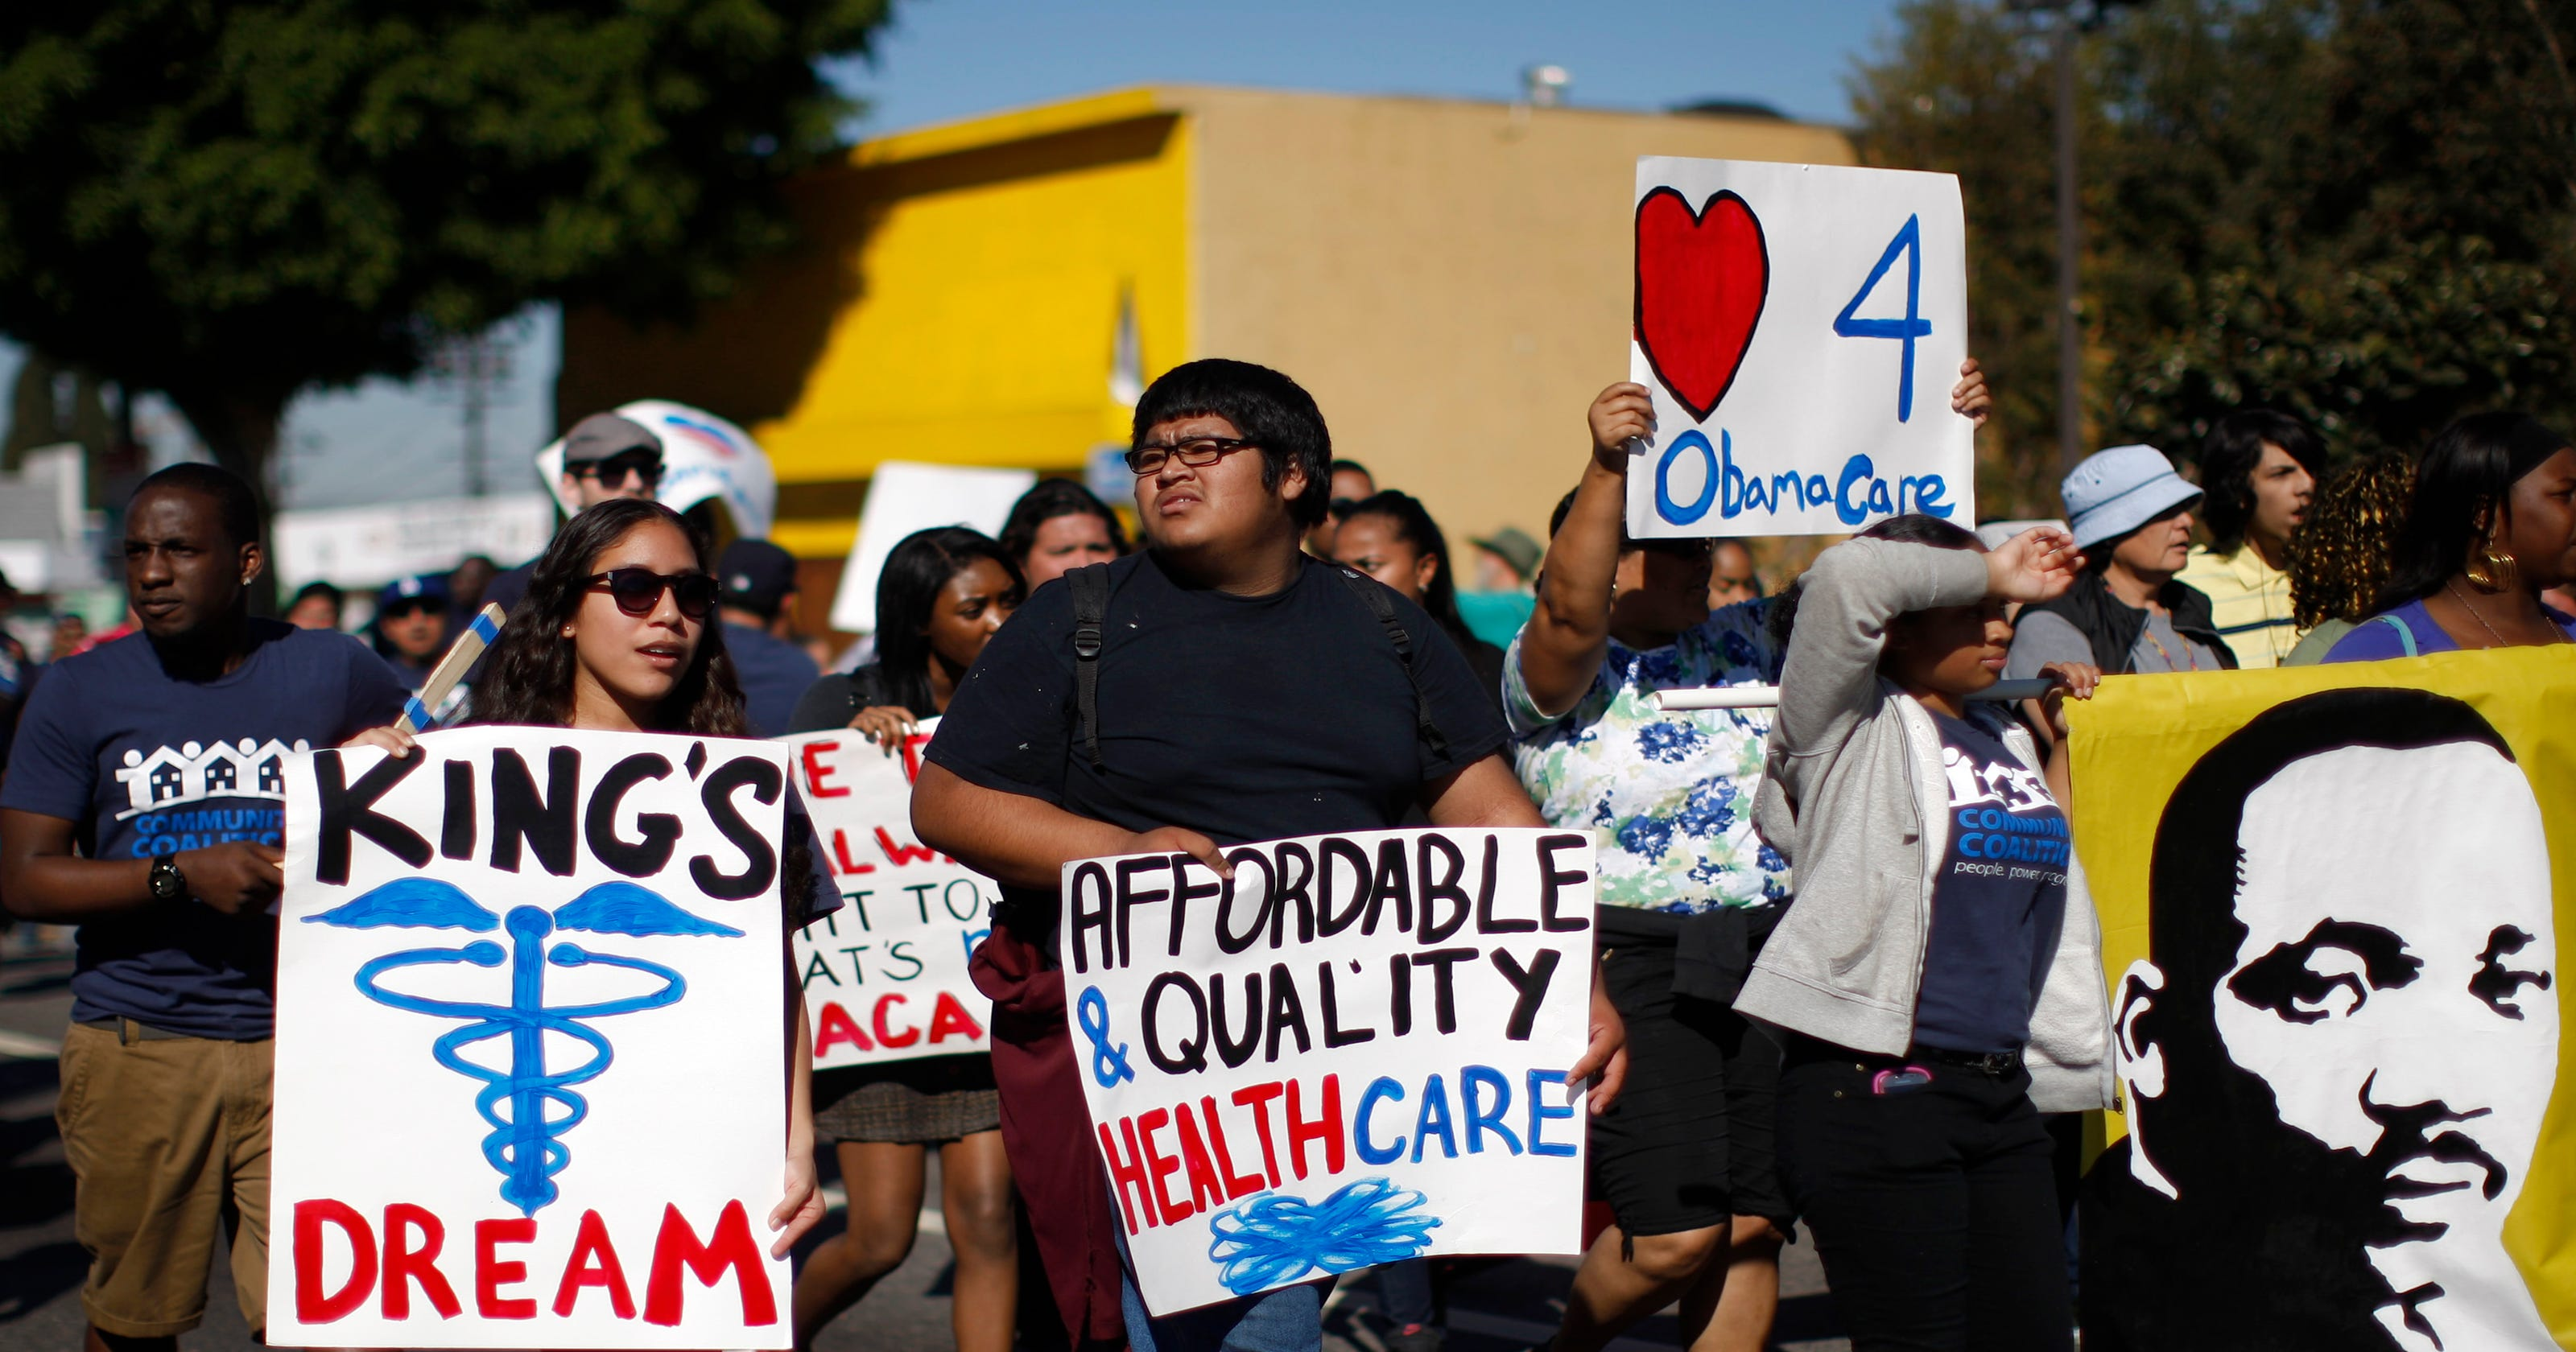 I Dreamed That Step By Step Obamacare >> Obamacare Increases Incomes Of Poorest Study Finds